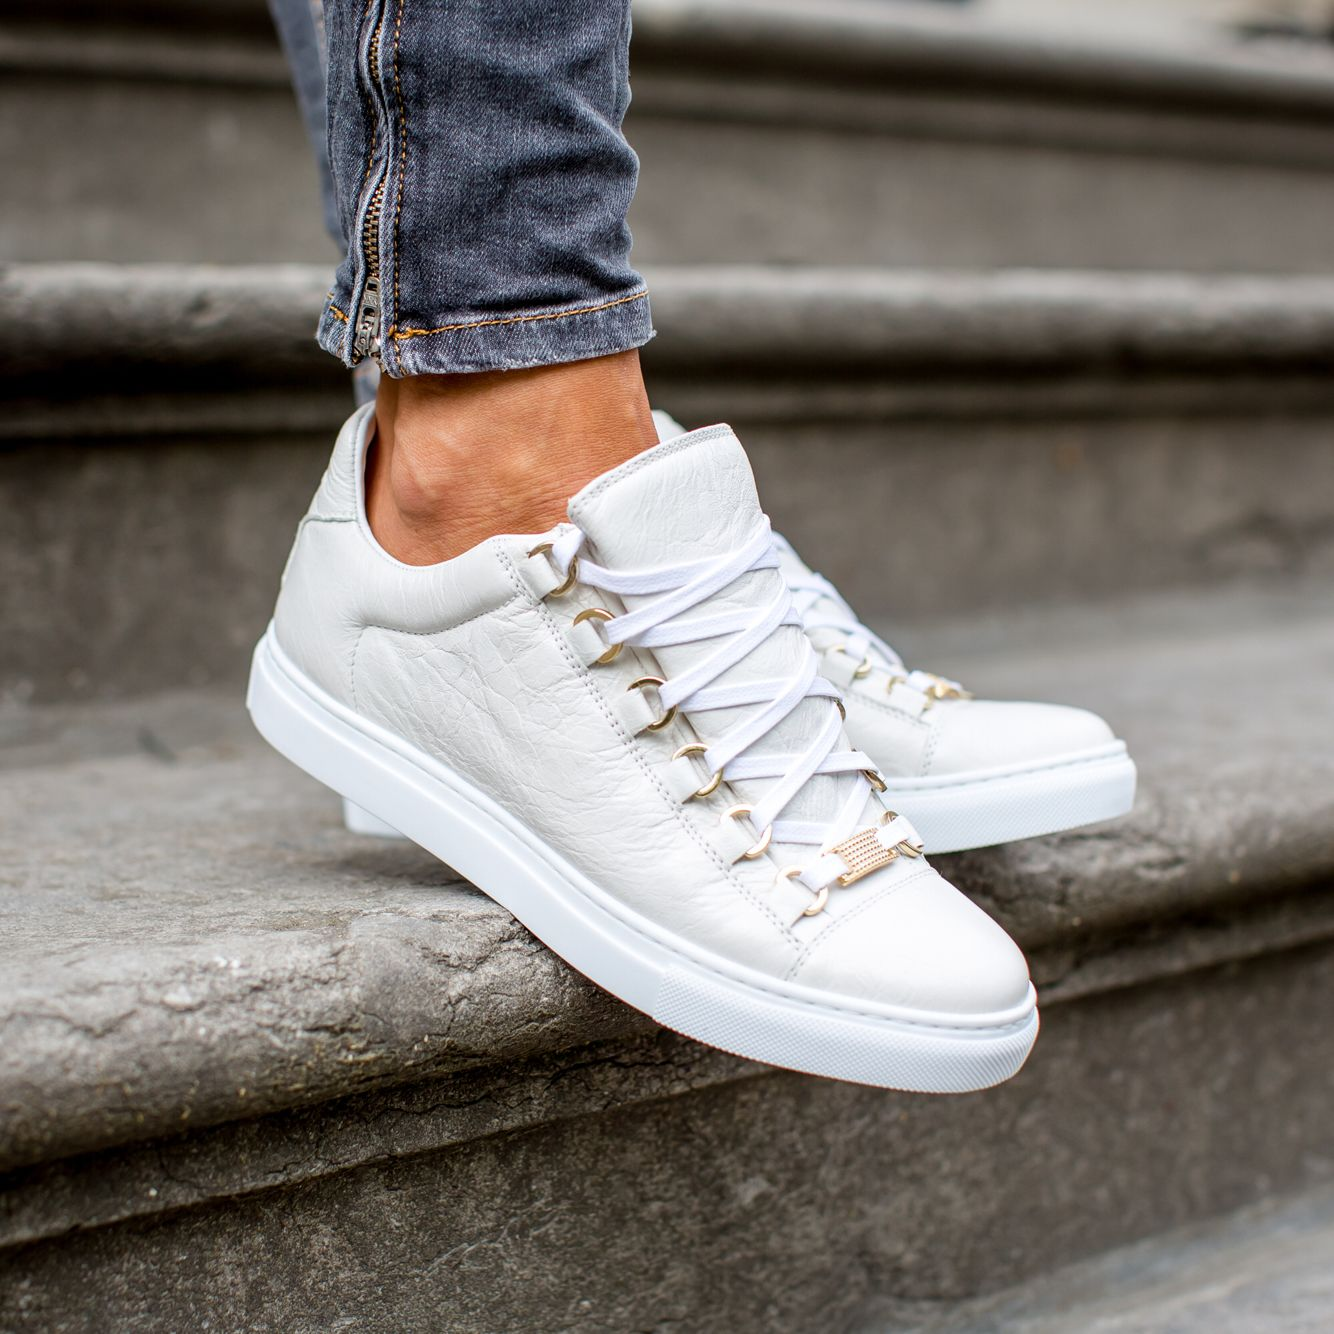 low price order online timeless design MUSTBUYONE.COM in 2019 | Balenciaga shoes mens, Sneakers ...